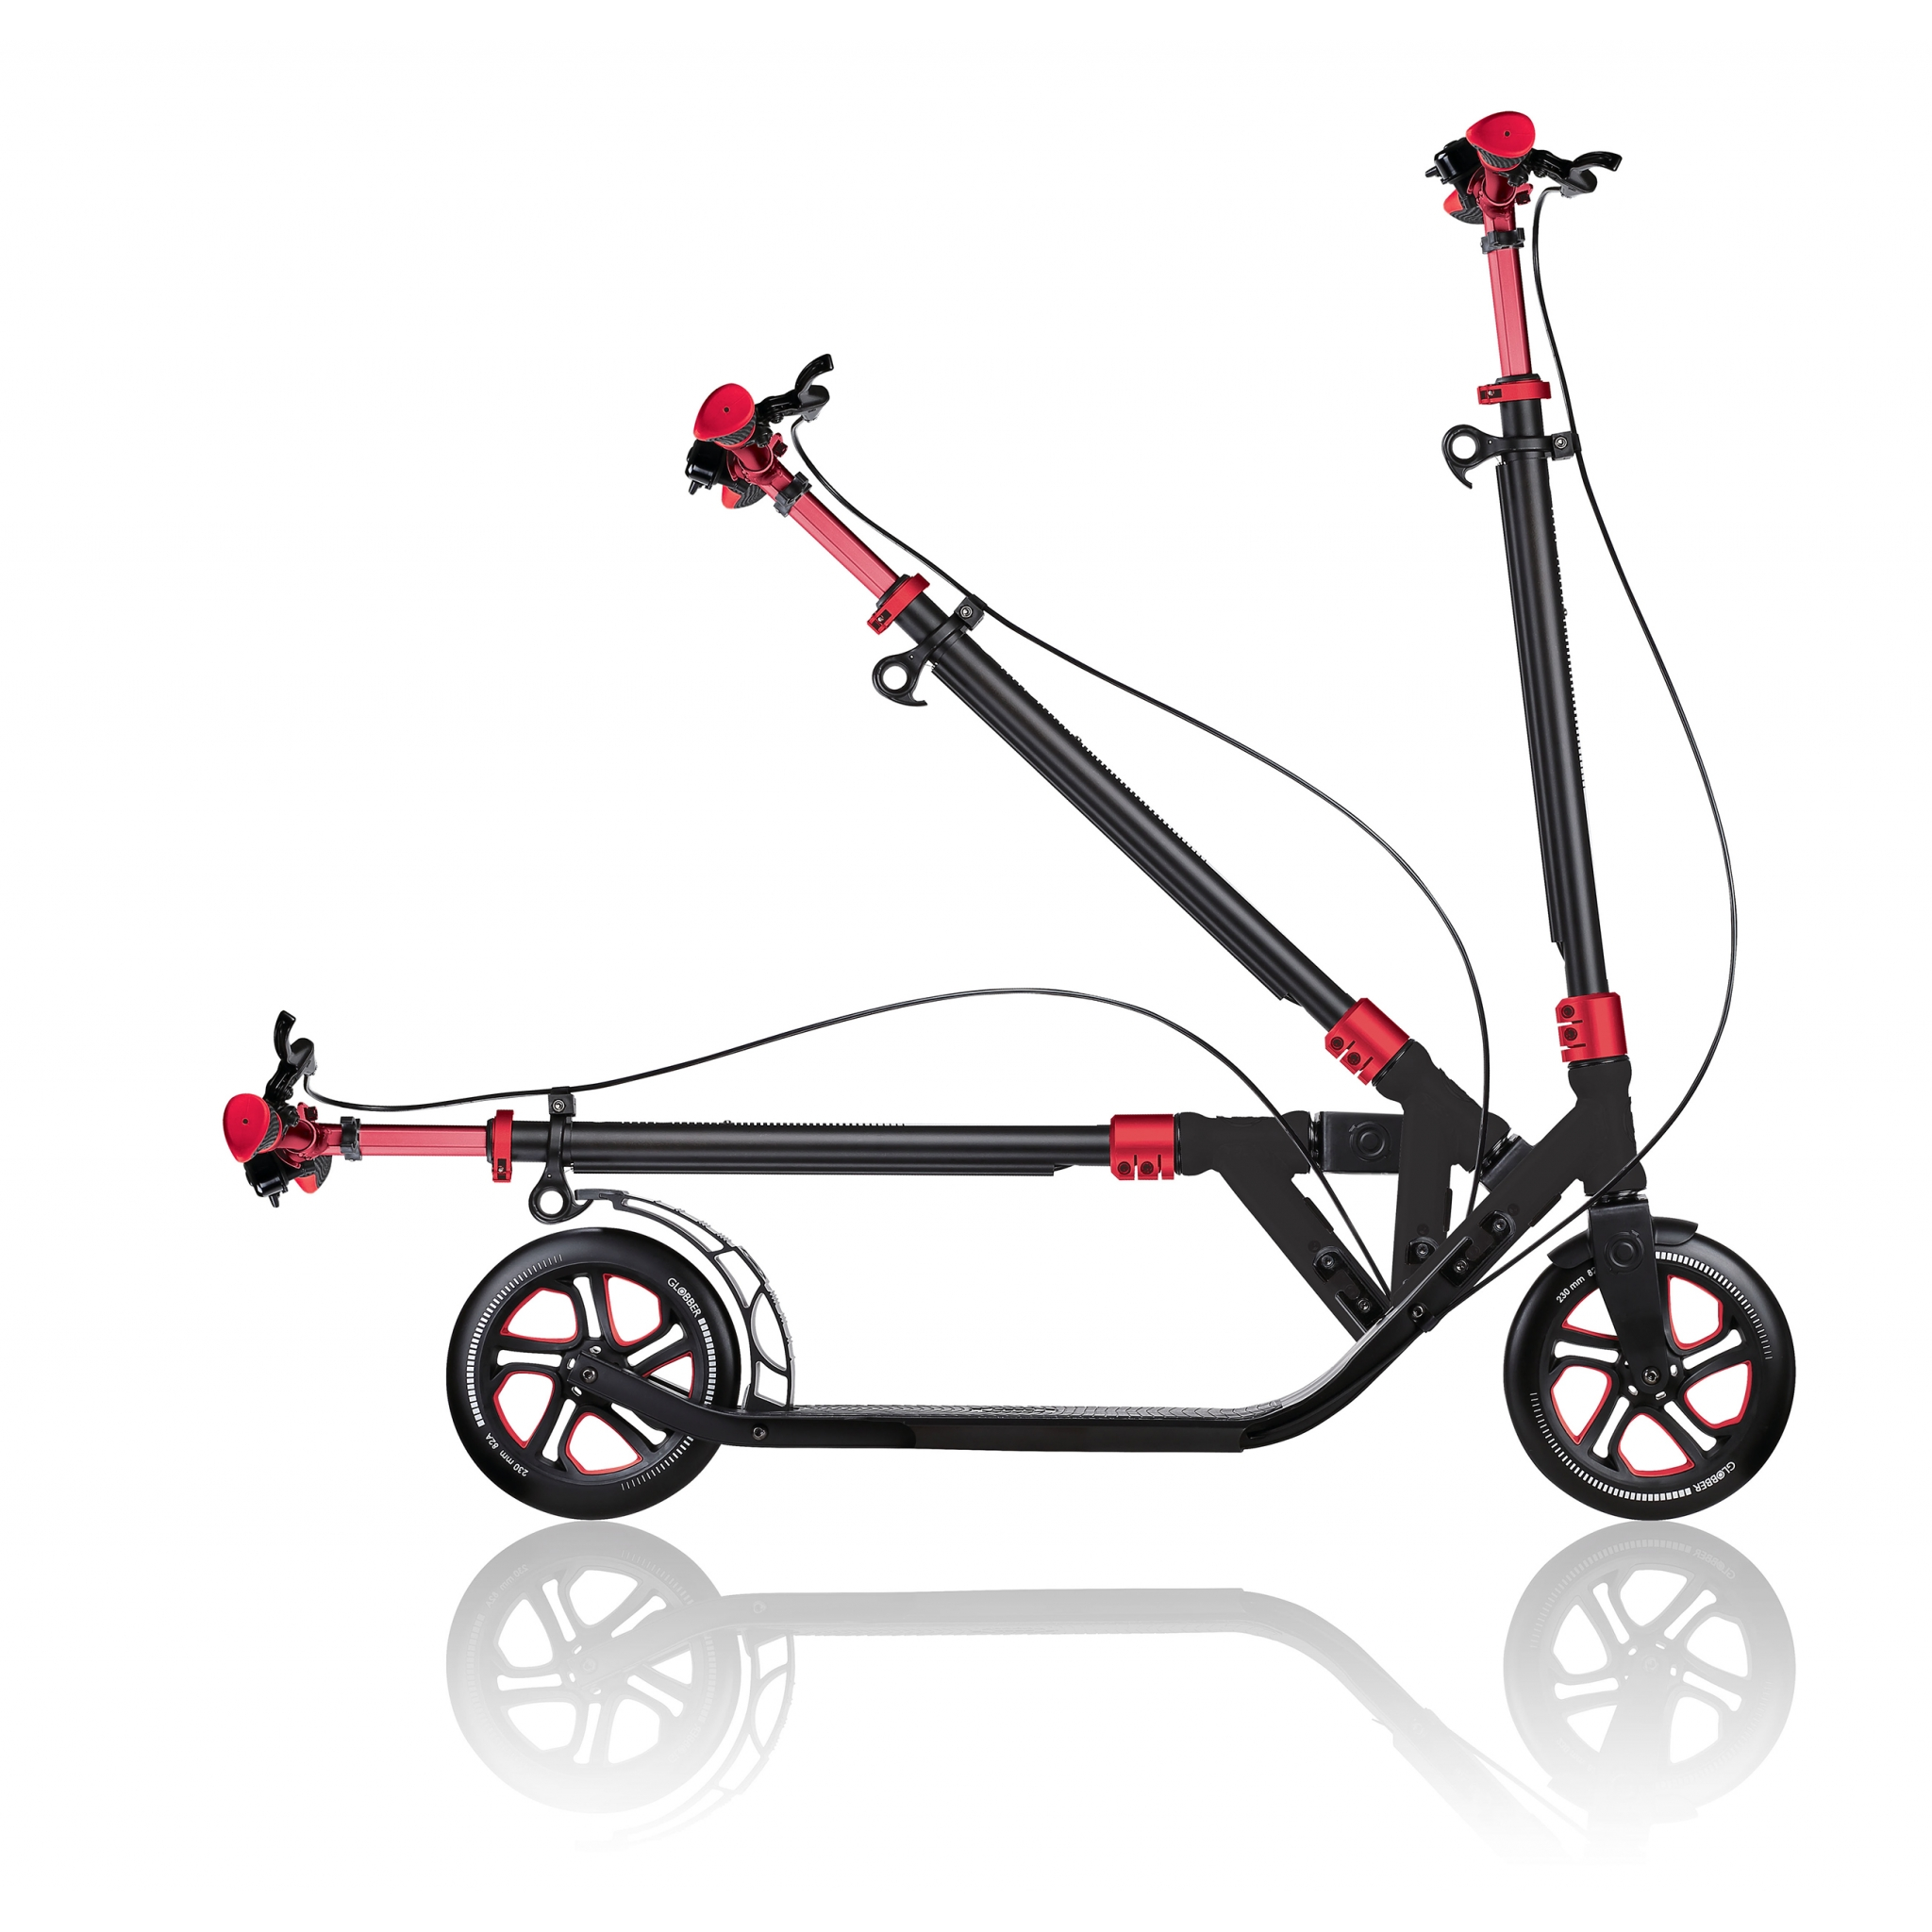 big wheel kick scooter - Globber ONE NL 230 ULTIMATE 3